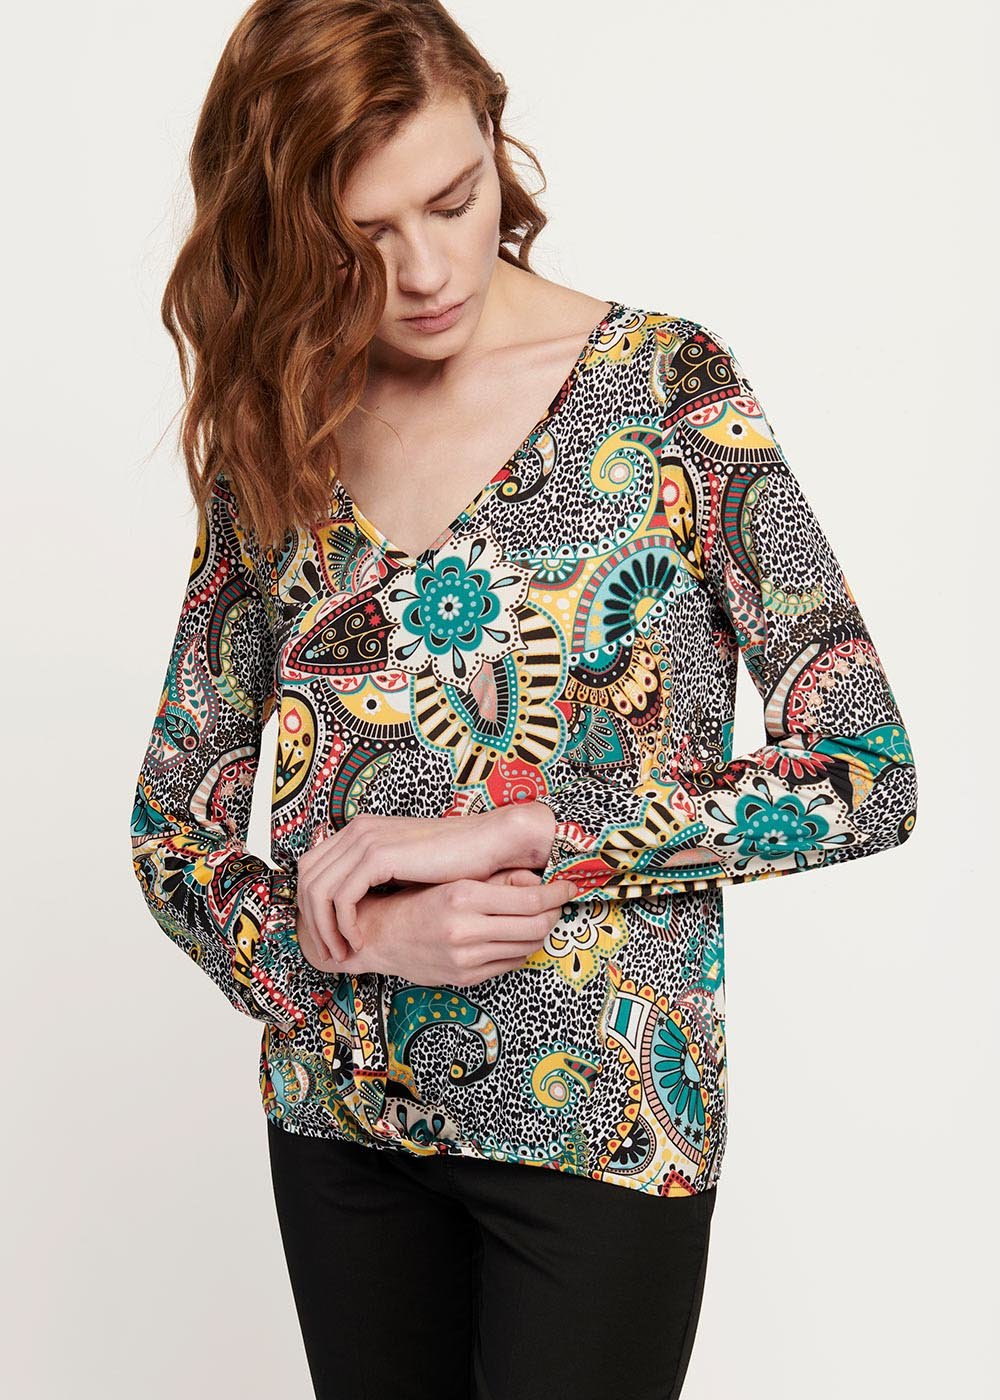 Anna T-shirt with cashmere and spotted pattern - Black / Menta Fantasia - Woman